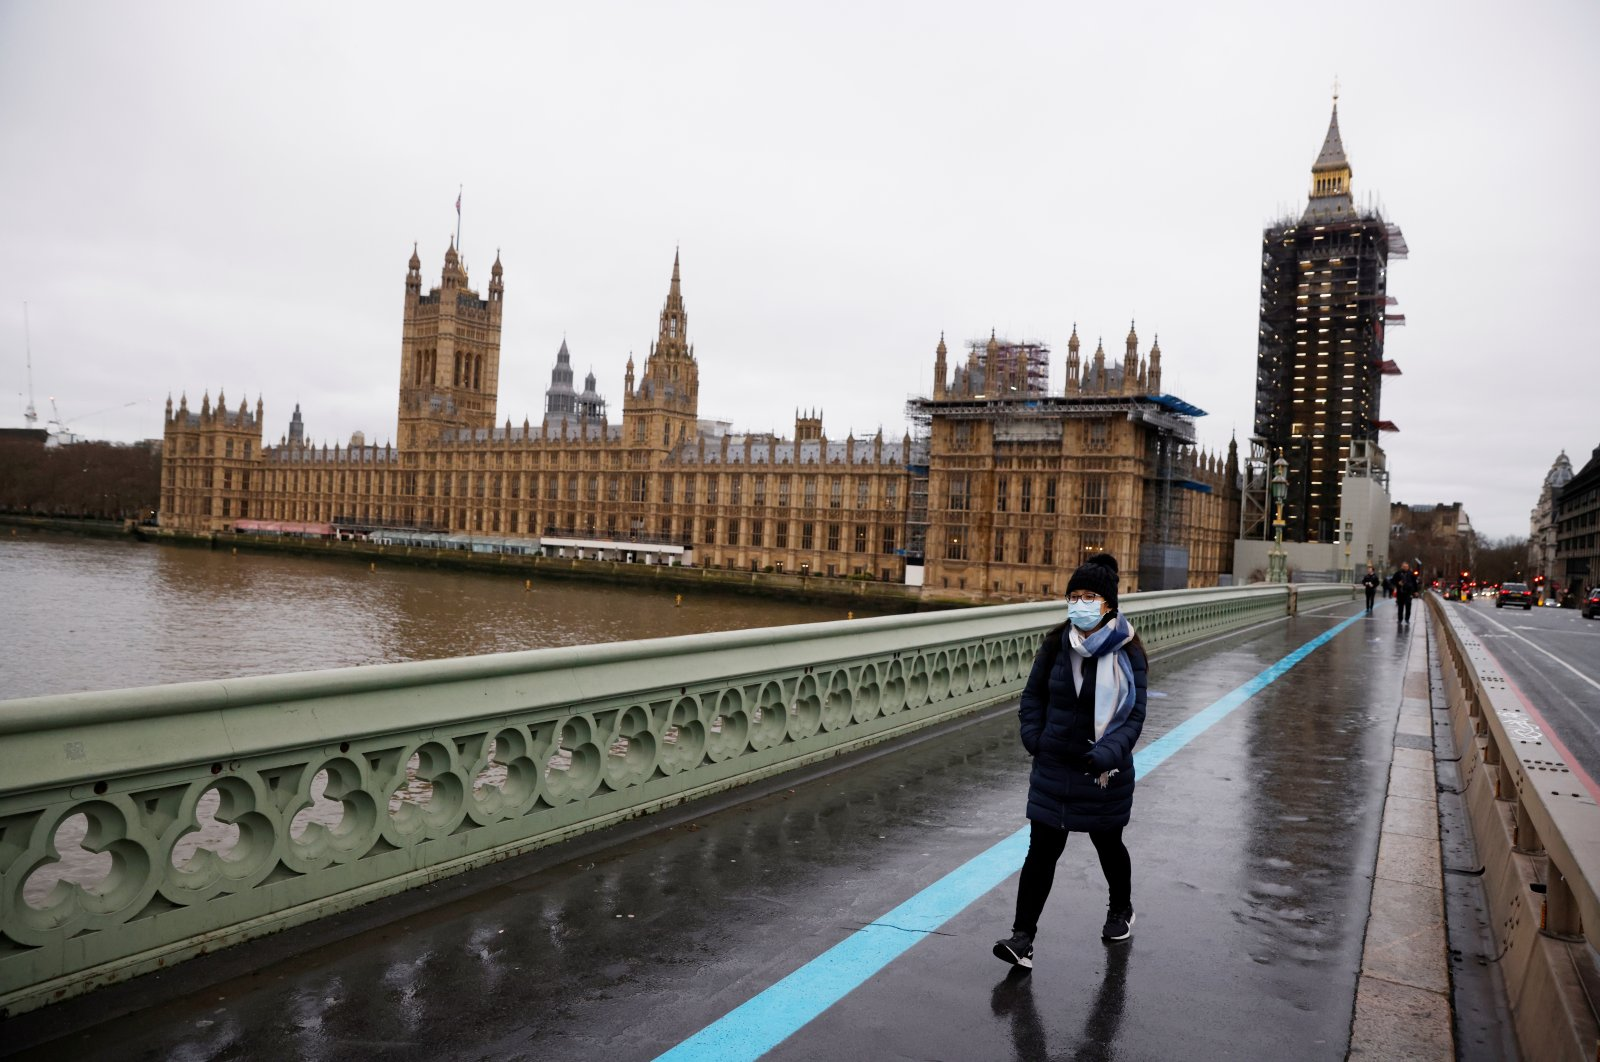 A woman wearing a mask walks across Westminster Bridge past the Houses of Parliament, as the spread of COVID-19 continues, in London, Britain, Dec. 22, 2020. (Reuters Photo)